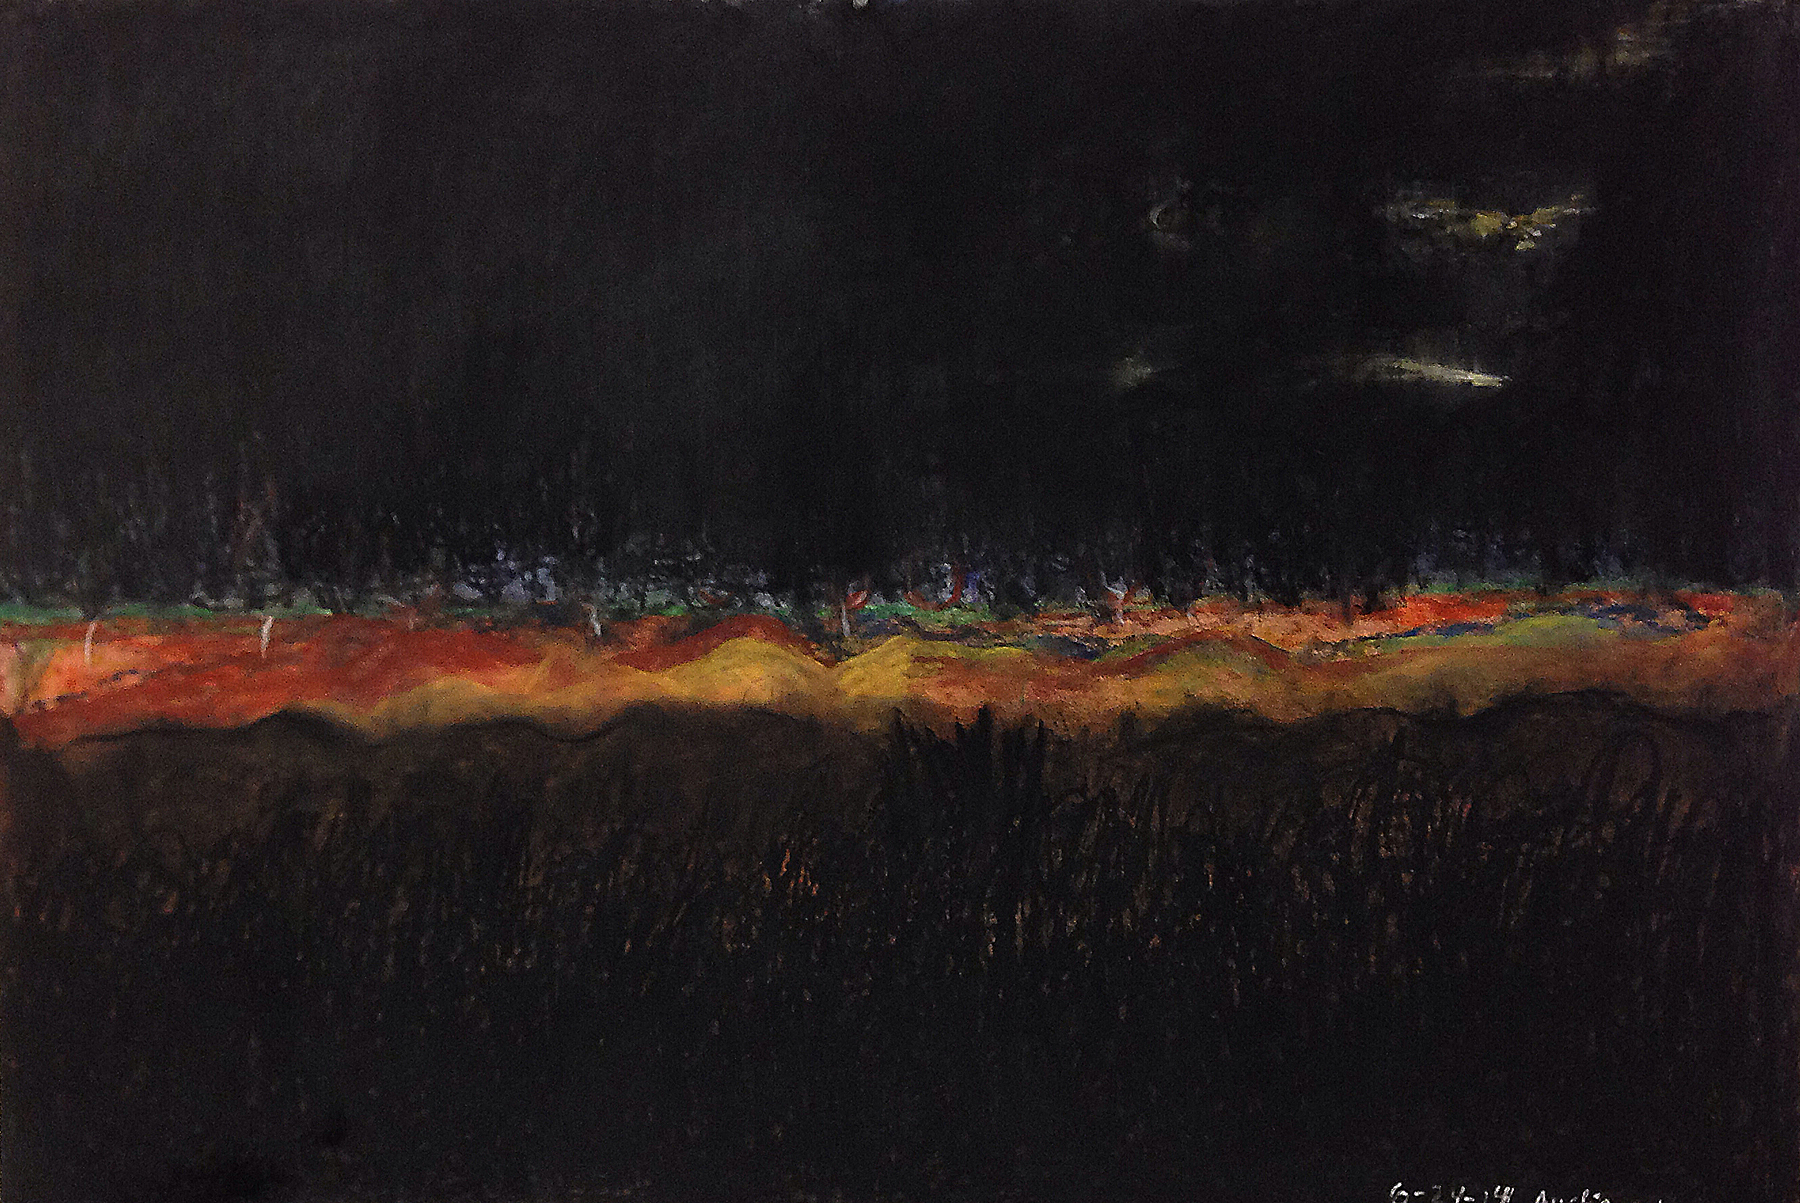 Scout K. Austin  and Kellie Weeks,  Untitled No. 16   pastel and charcoal, 44 x 30 in., $600.00